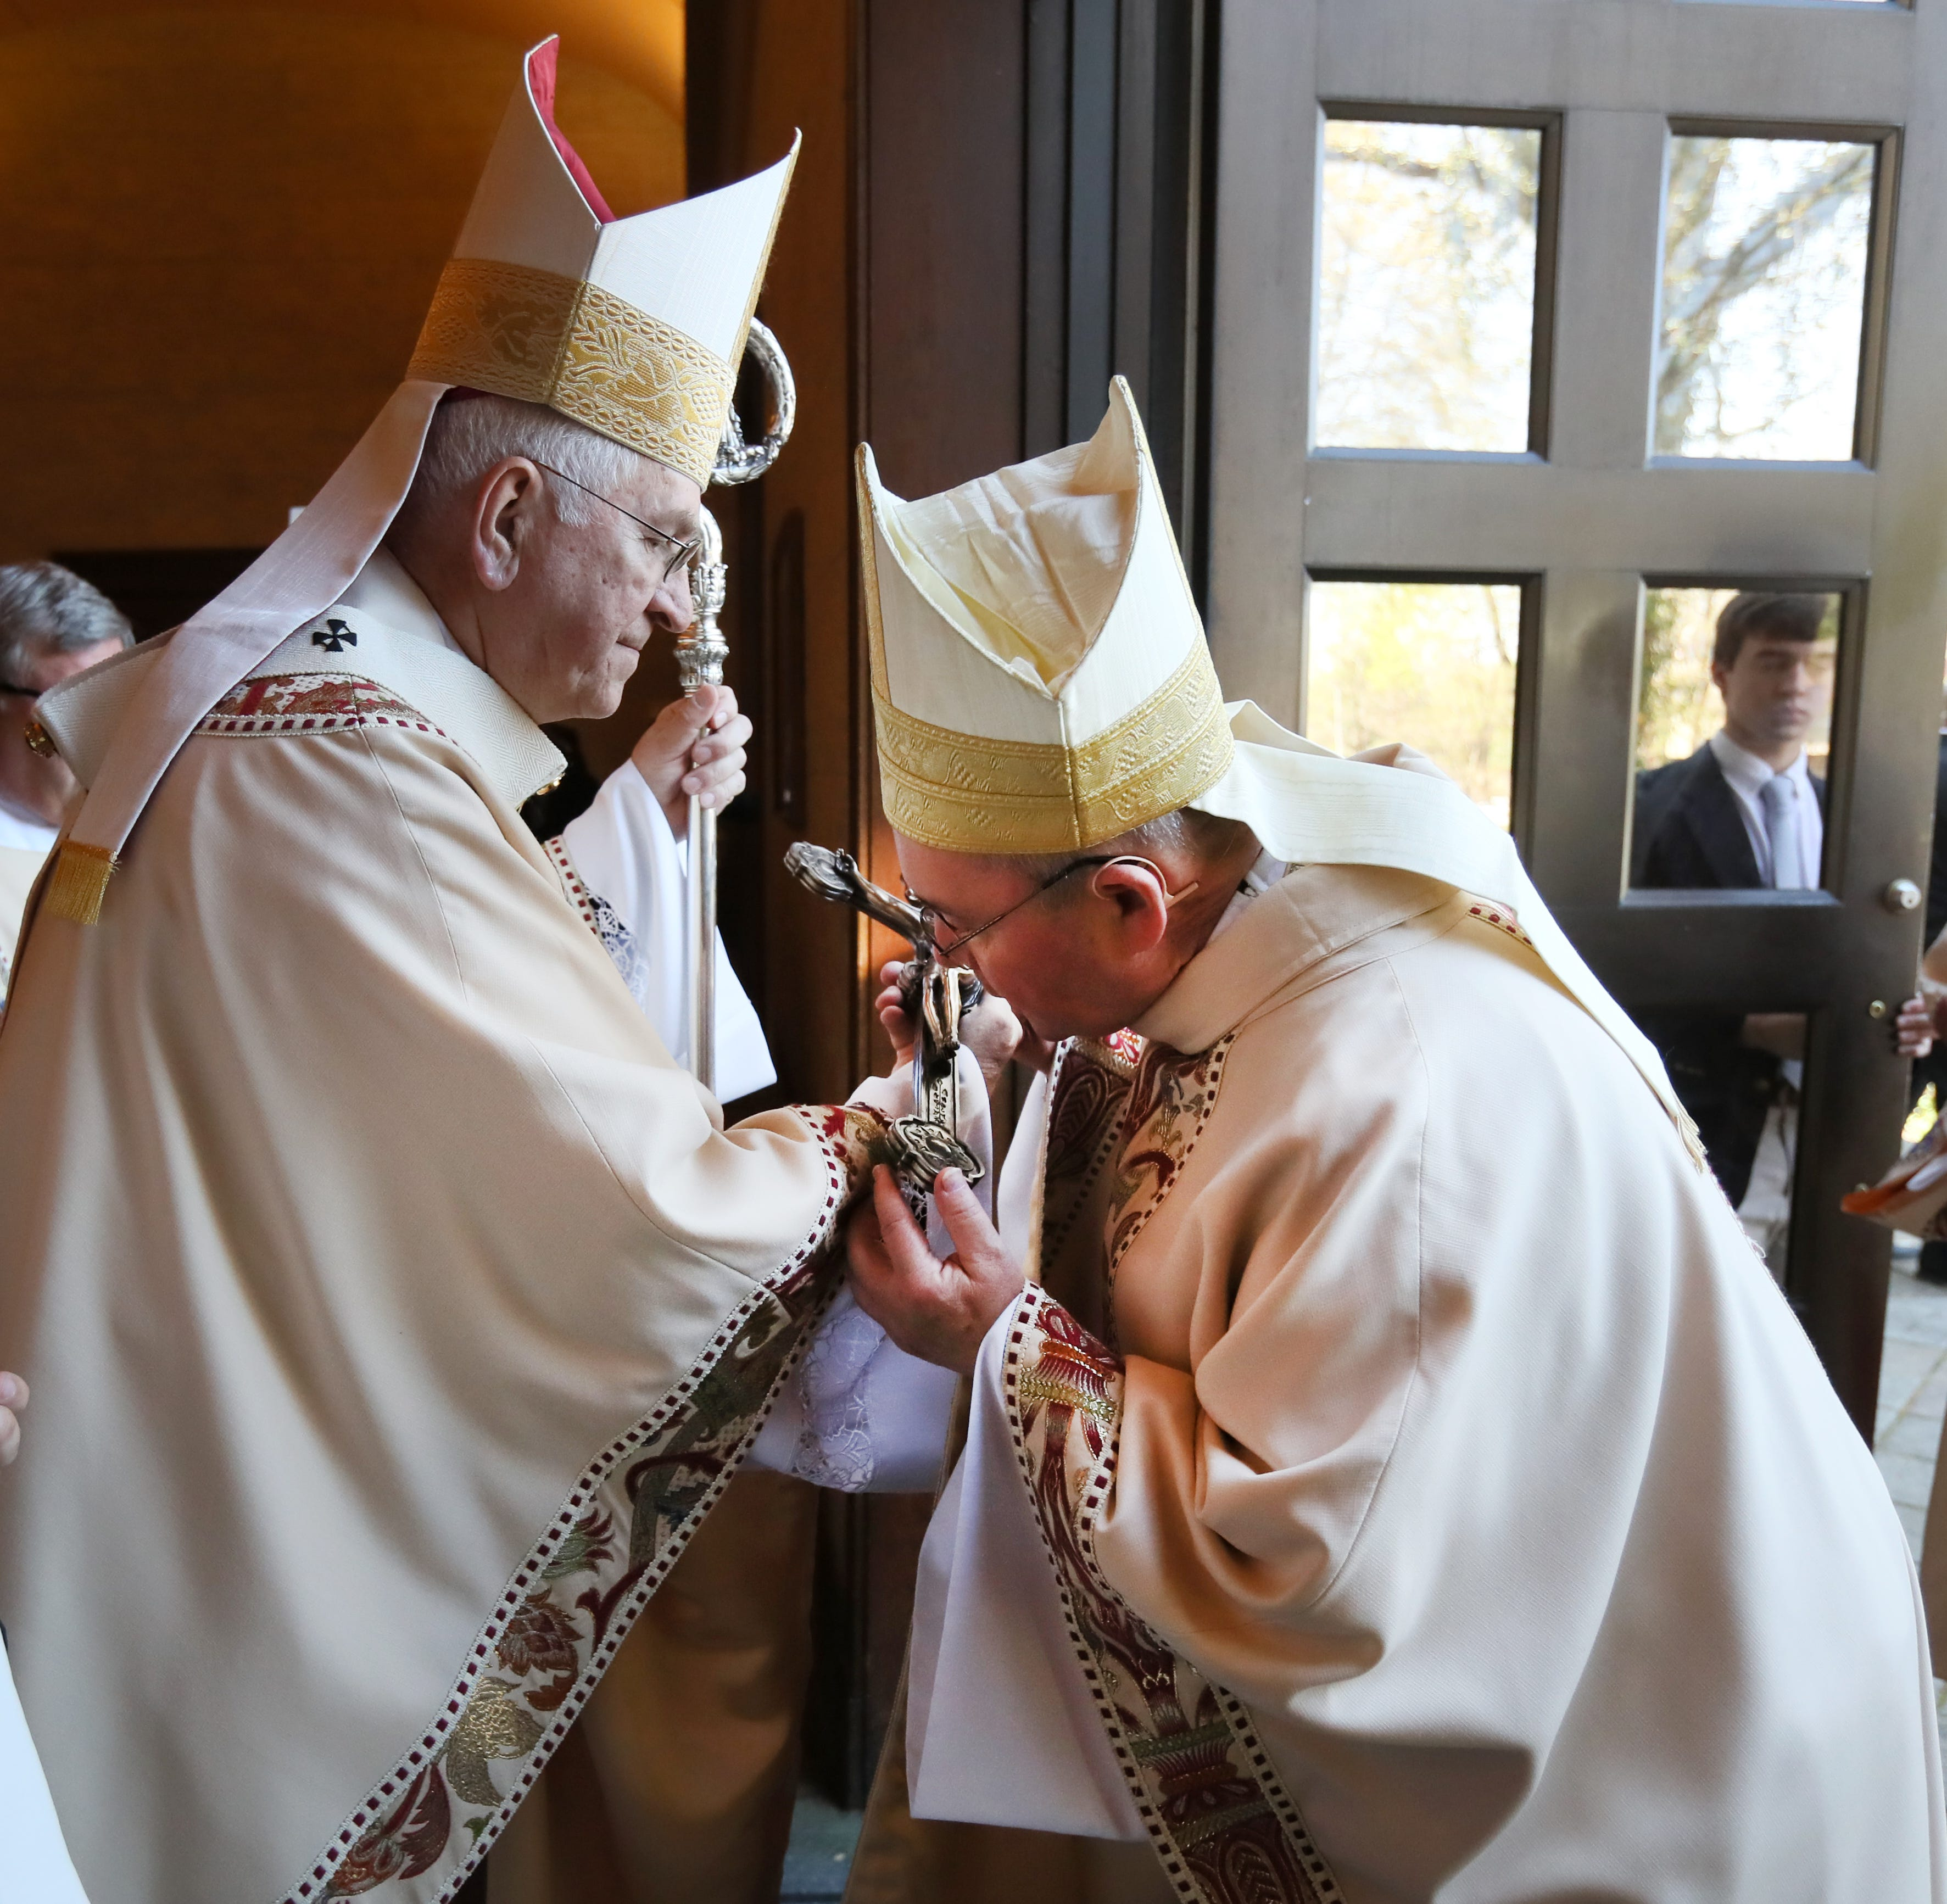 Bishop David Talley spoke of 'a new heart' during installation as leader of Diocese of Memphis